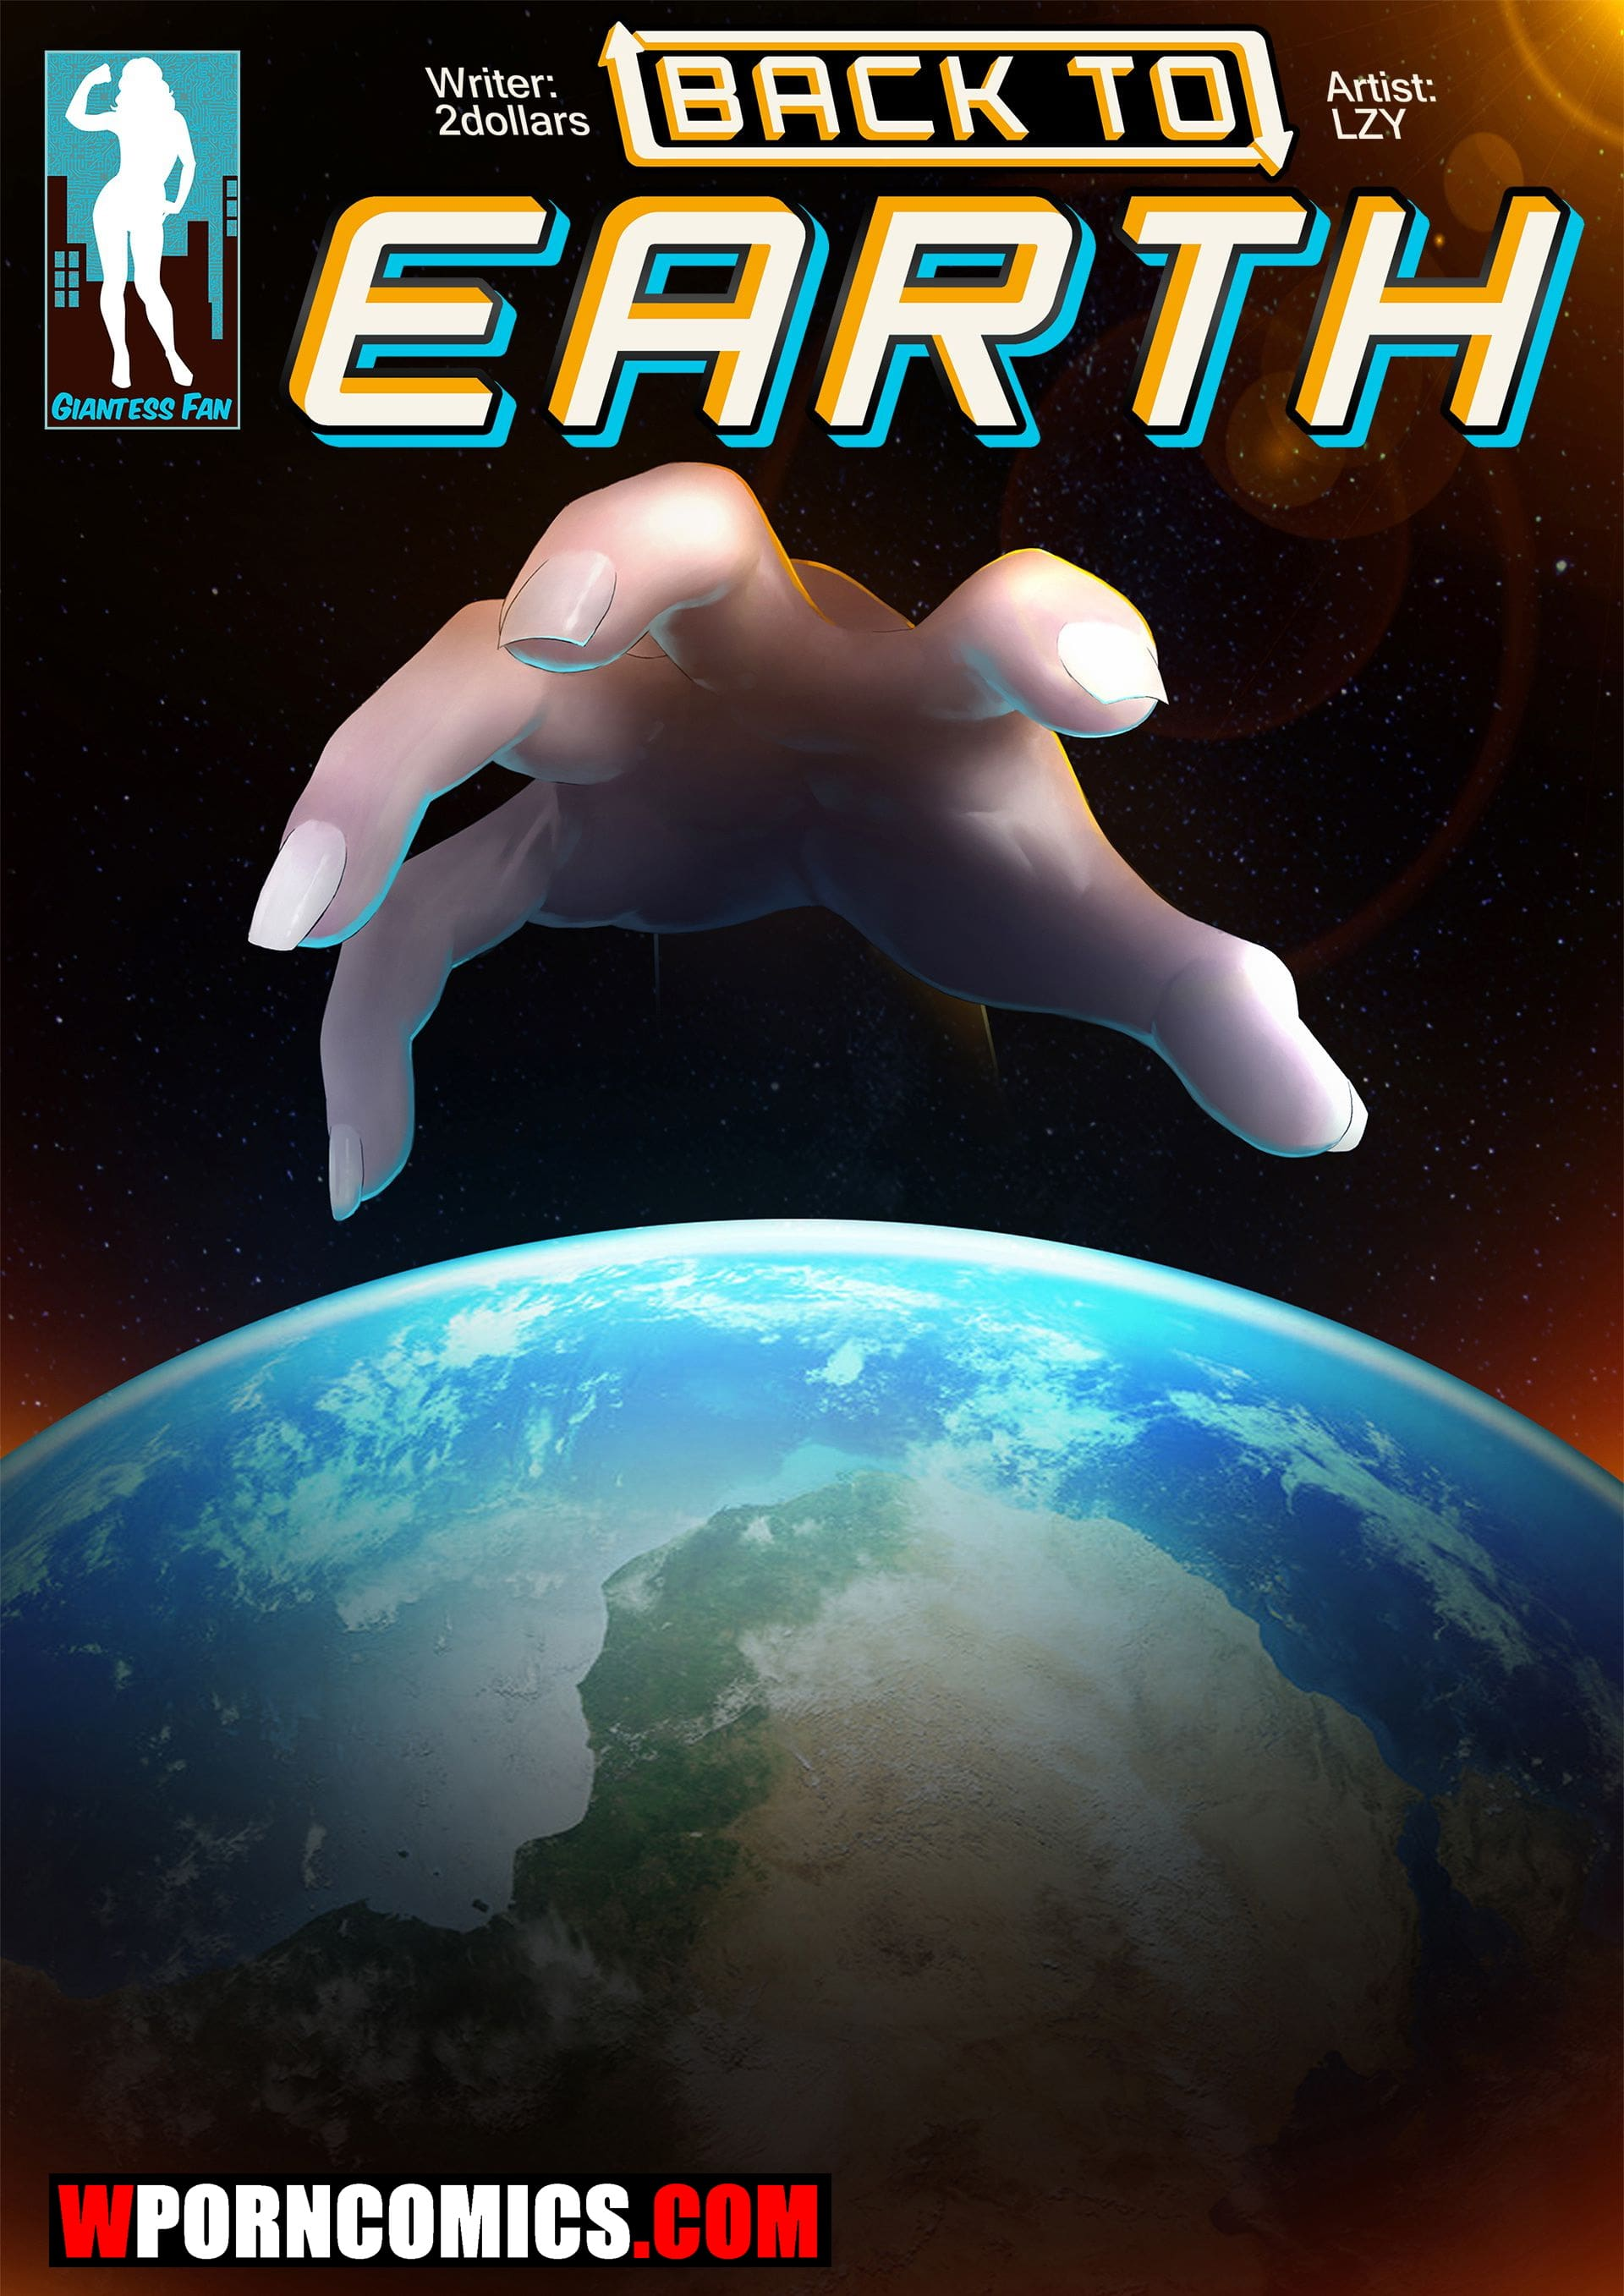 Porn comic Back To Earth.